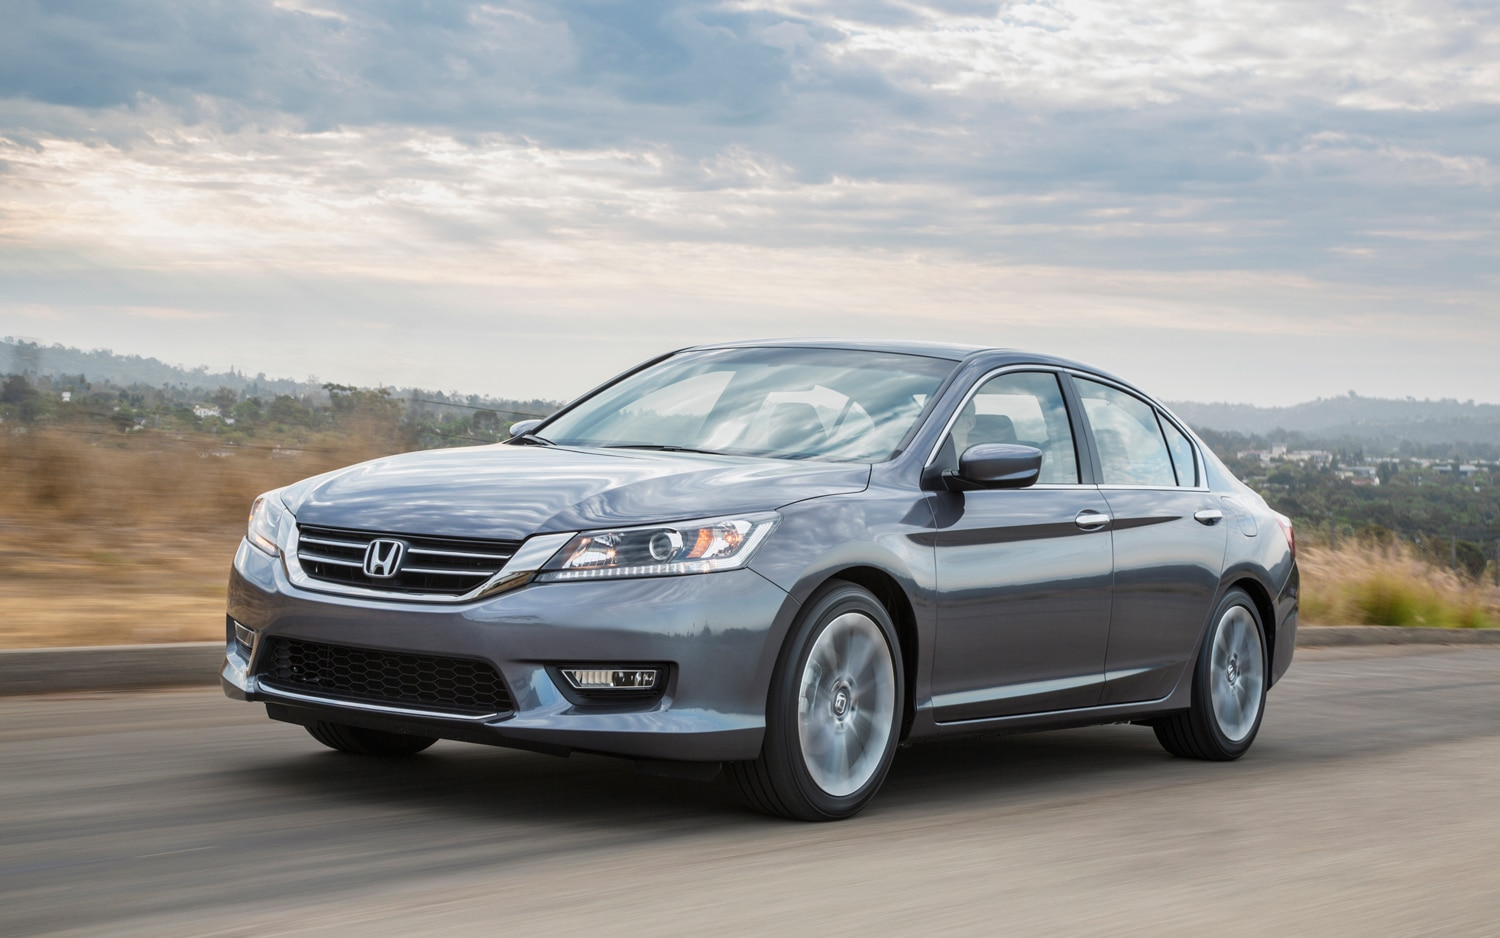 2013 Honda Accord Sport Sedan Front Three Quarters In Motion11